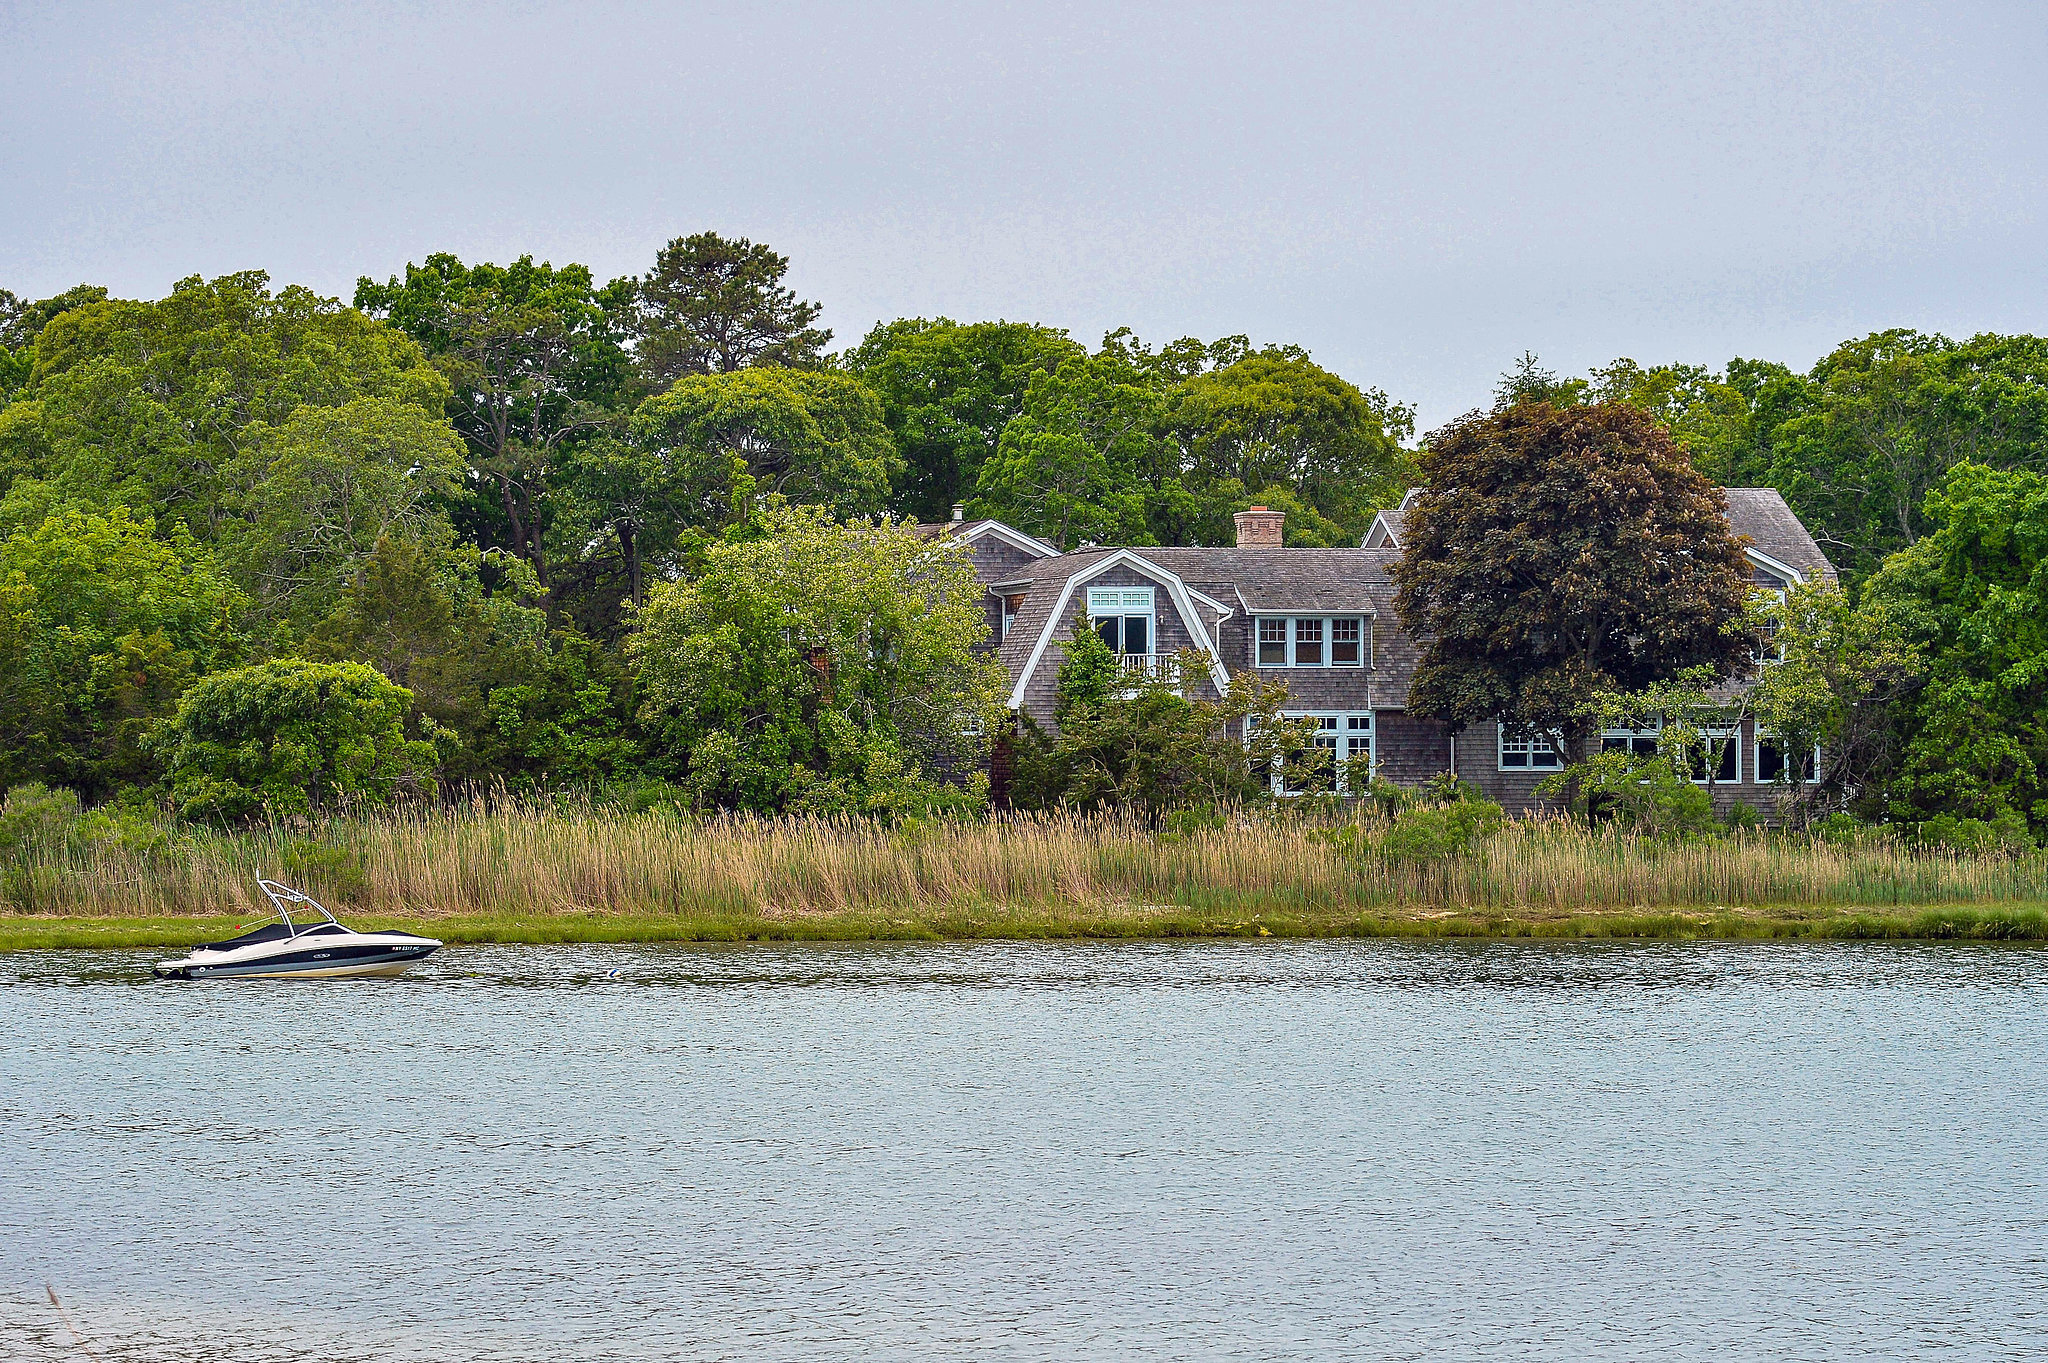 Situated on three acres, the waterfront house comes complete with a private dock and heated pool.